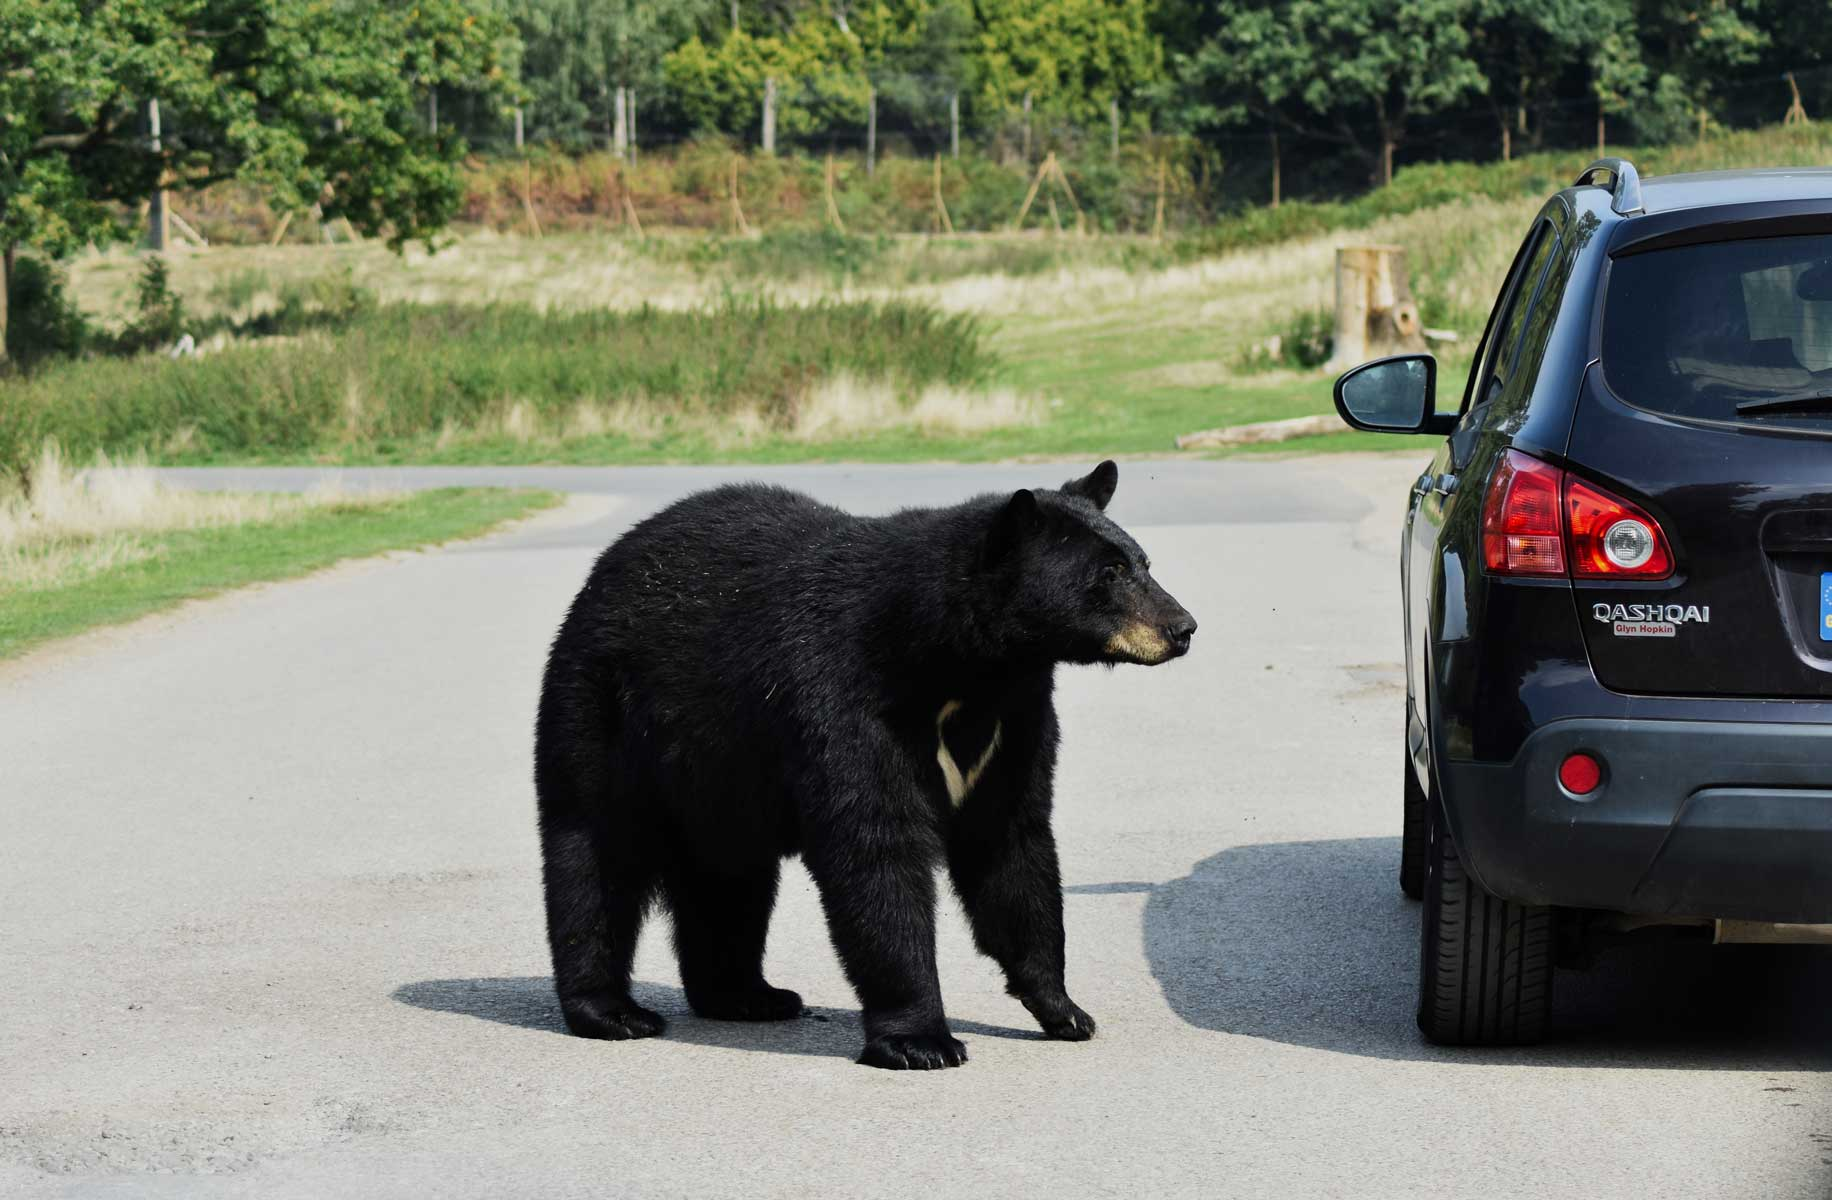 Black bear approaches a car on the road